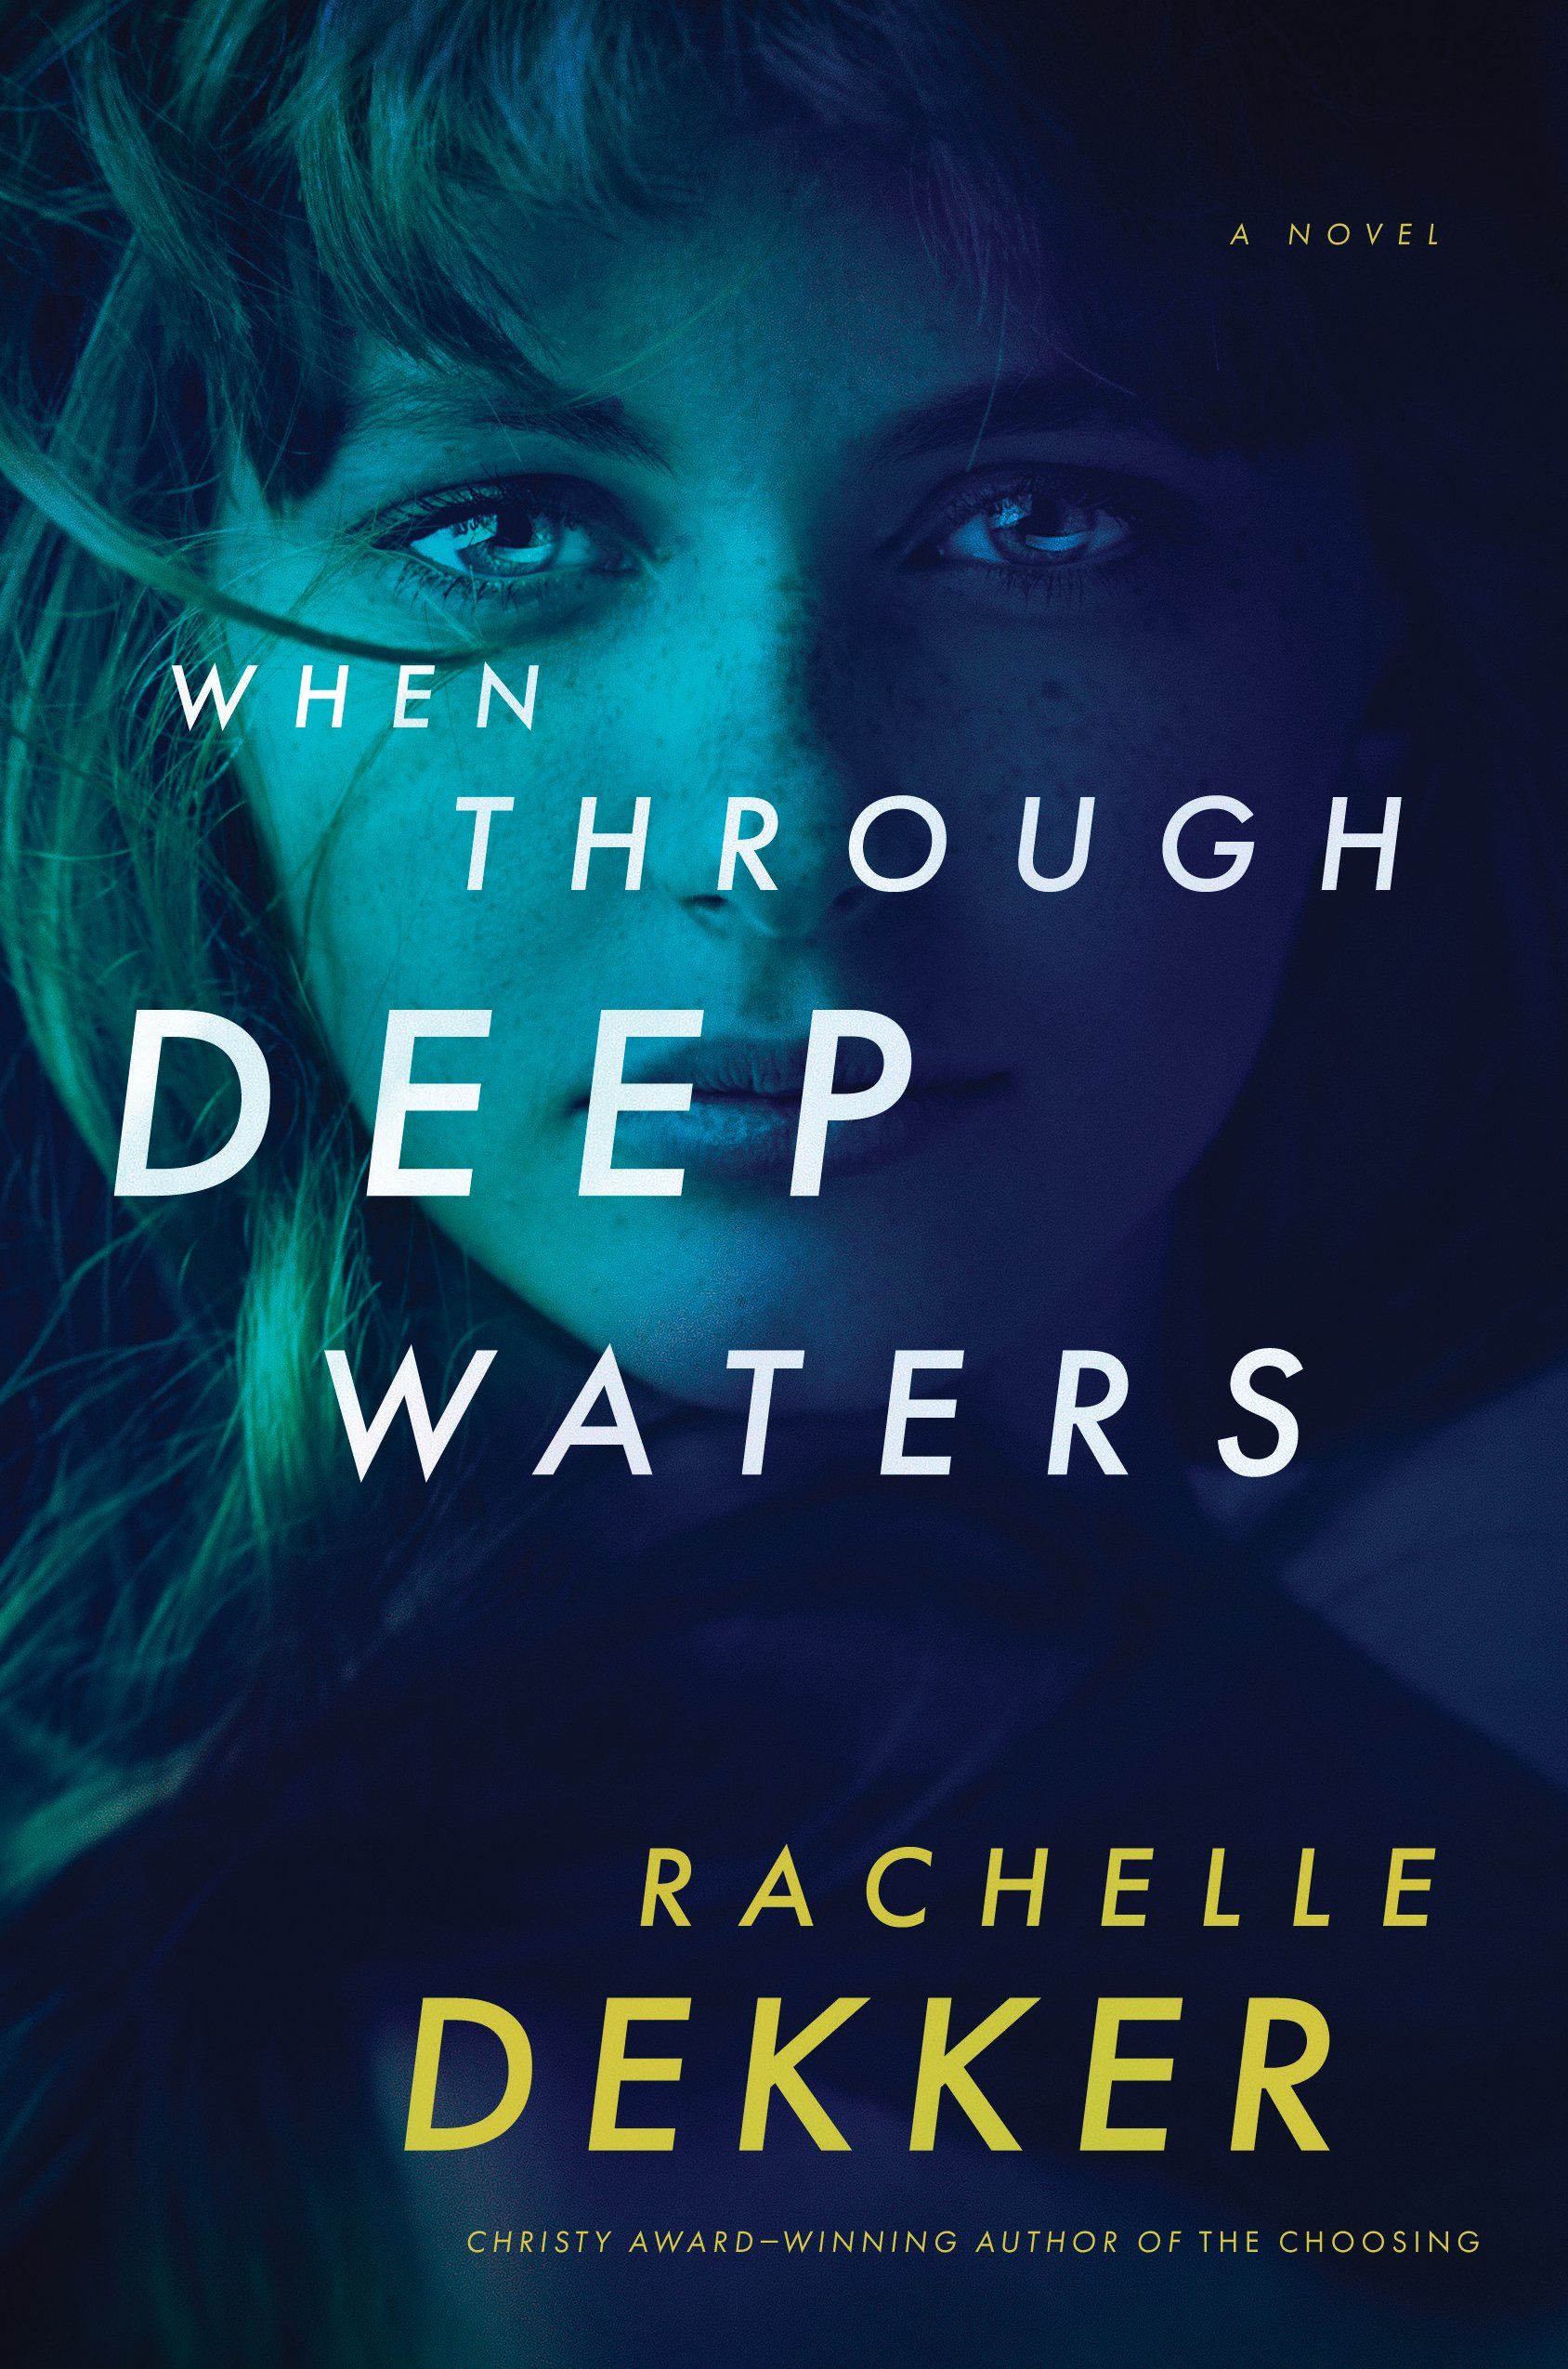 Image result for when through deep waters rachelle dekker